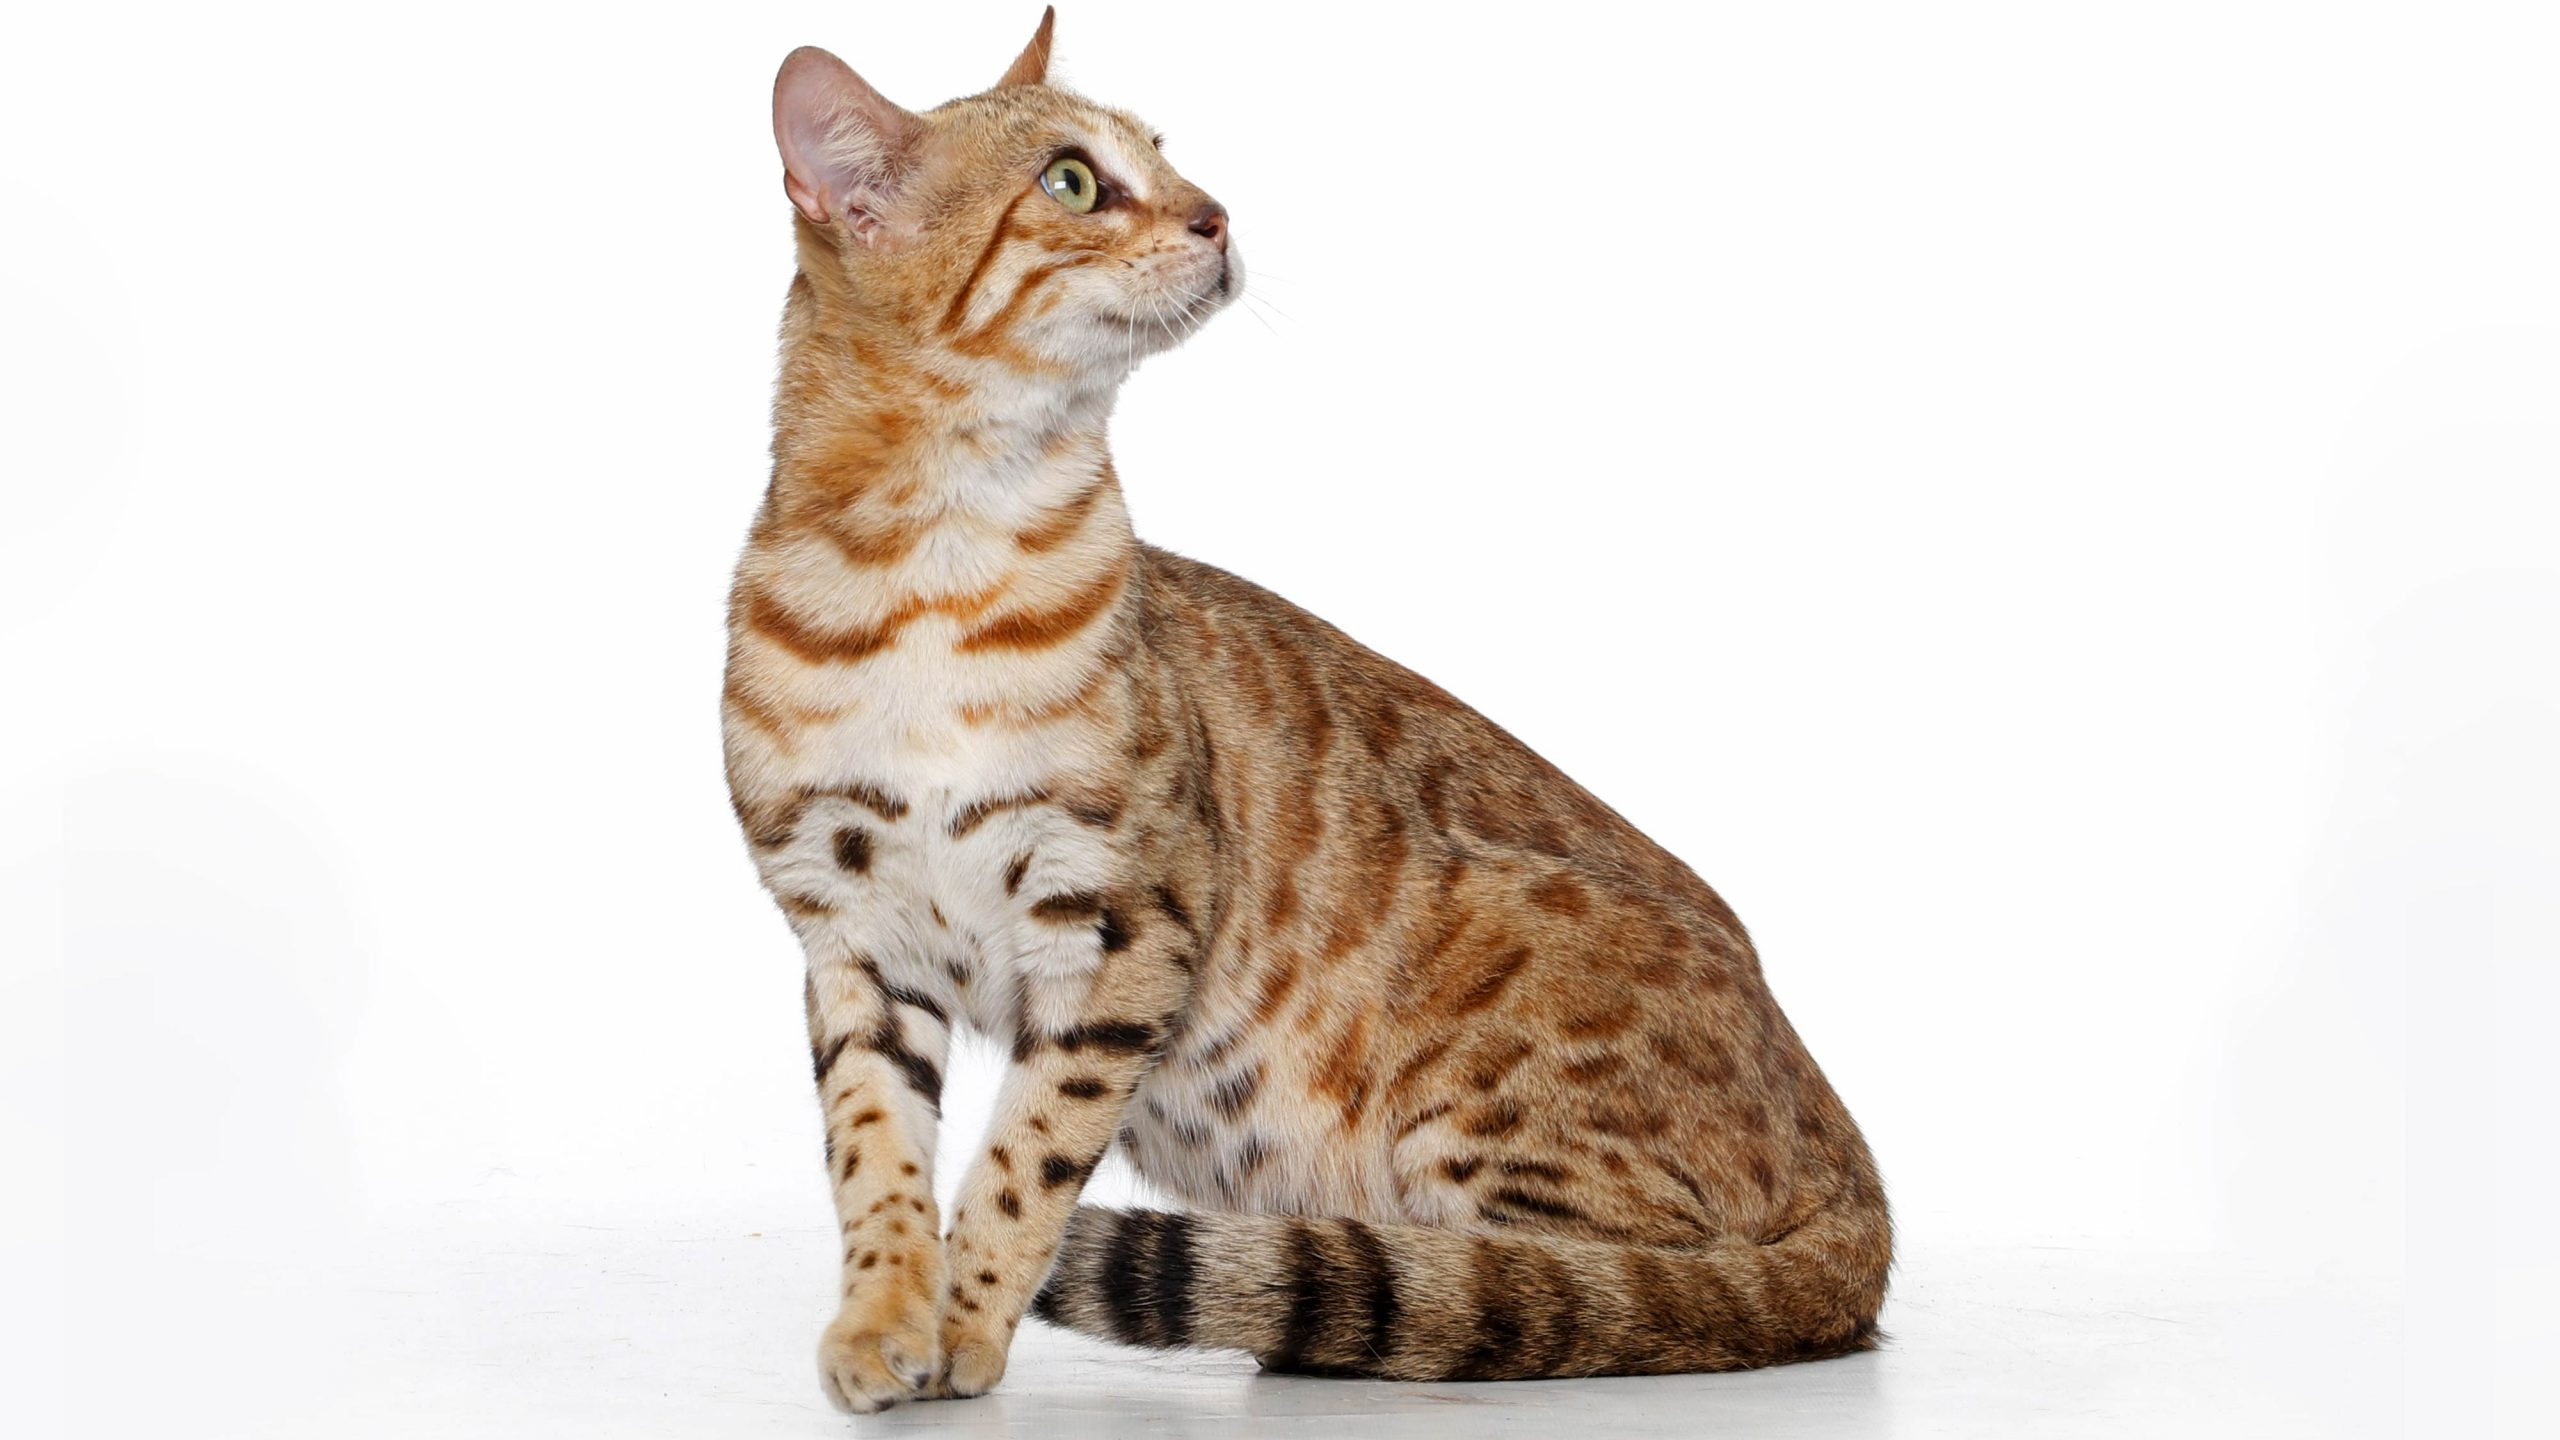 spotted-female-bengal-against-white-background-looking-up-with-profile-view